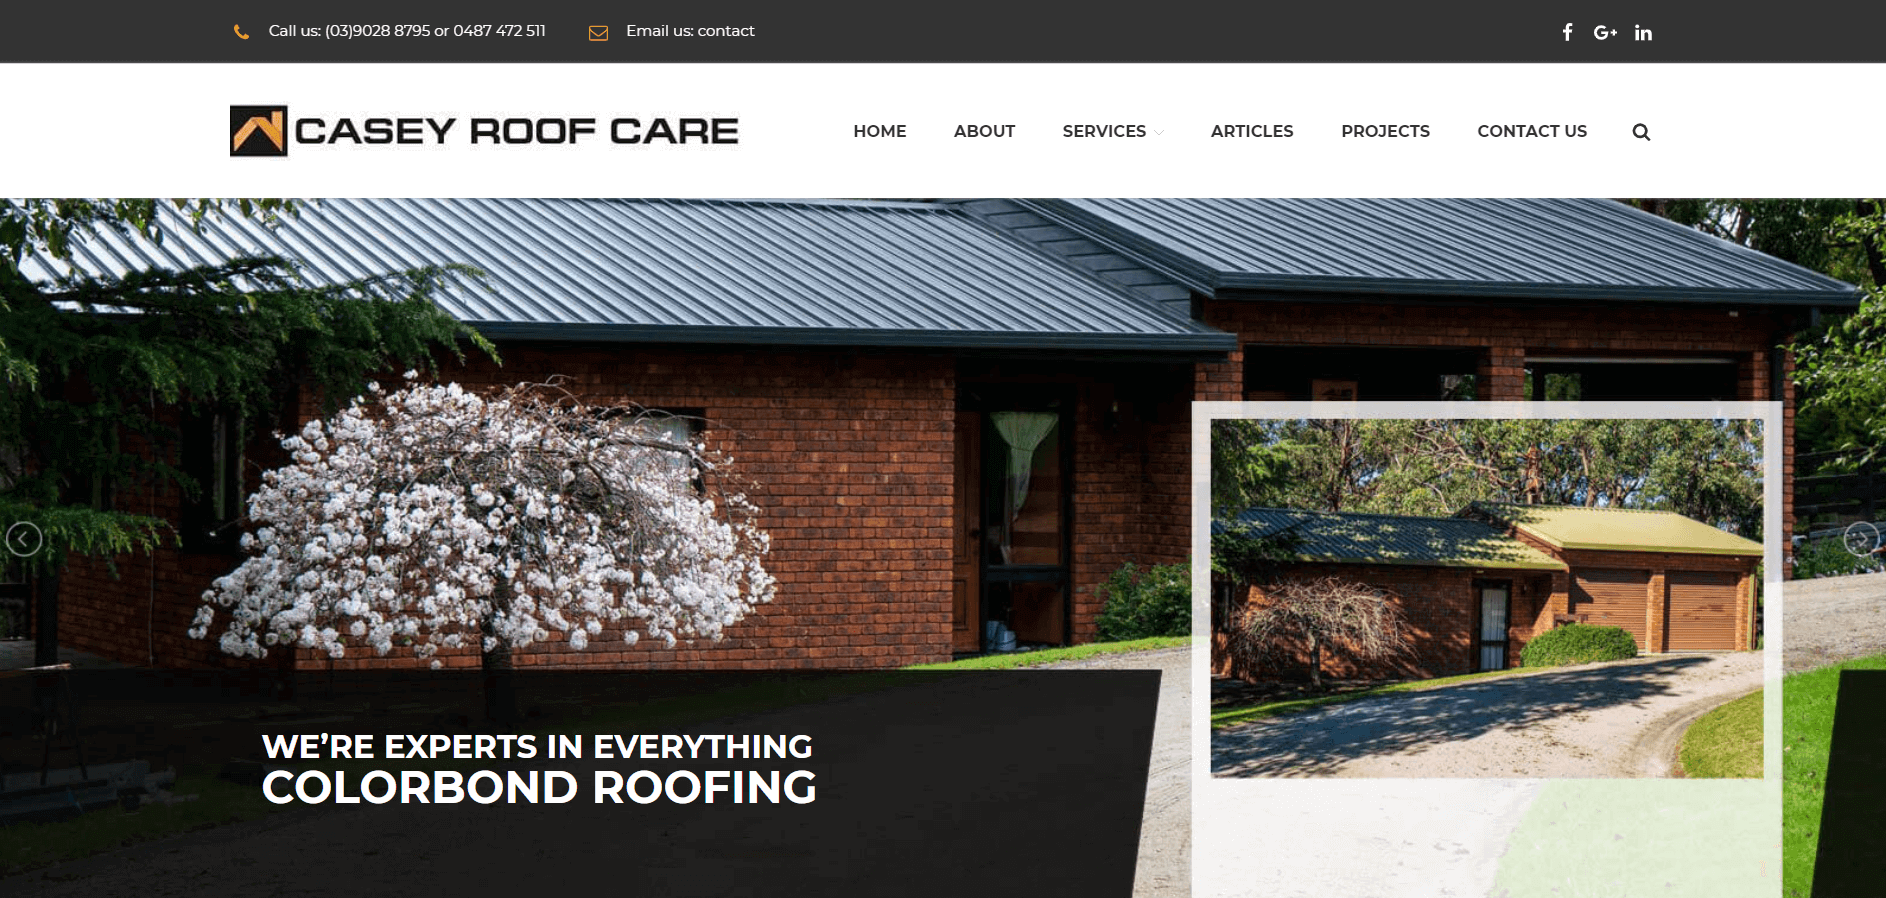 casey roof care